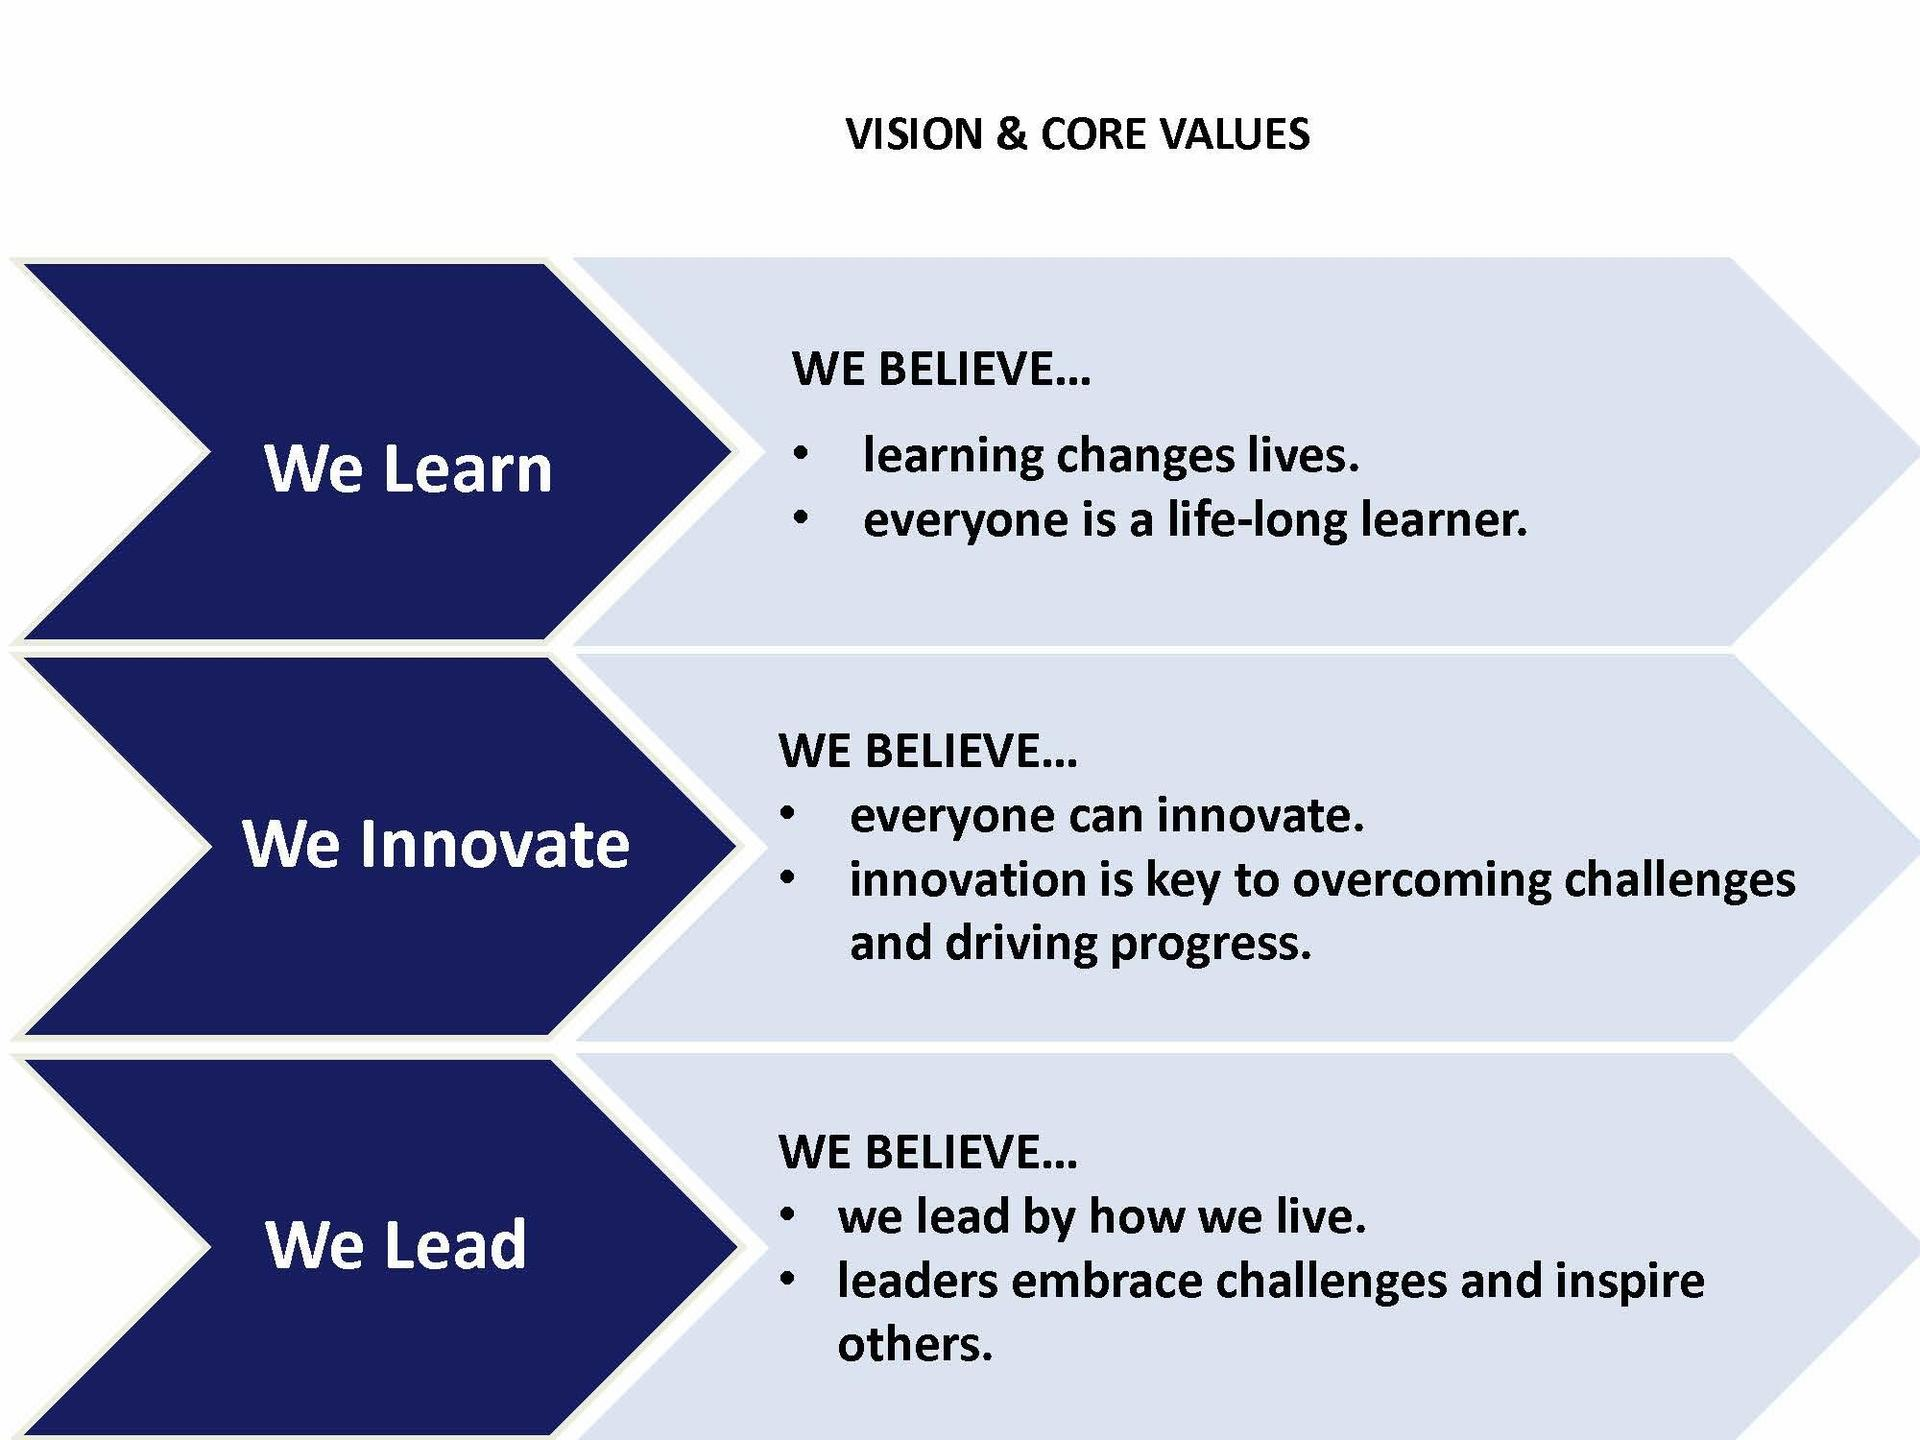 VISION AND CORE VALUES:   WE LEARN: We believe learning changes lives and everyone is a life-long learner.   WE INNOVATE:  We believe everyone can innovate.  Innovation is the key to overcoming challenges and driving progress.  WE LEAD: We believe we lead by how we live.  Leaders embrace challenges and inspire others.